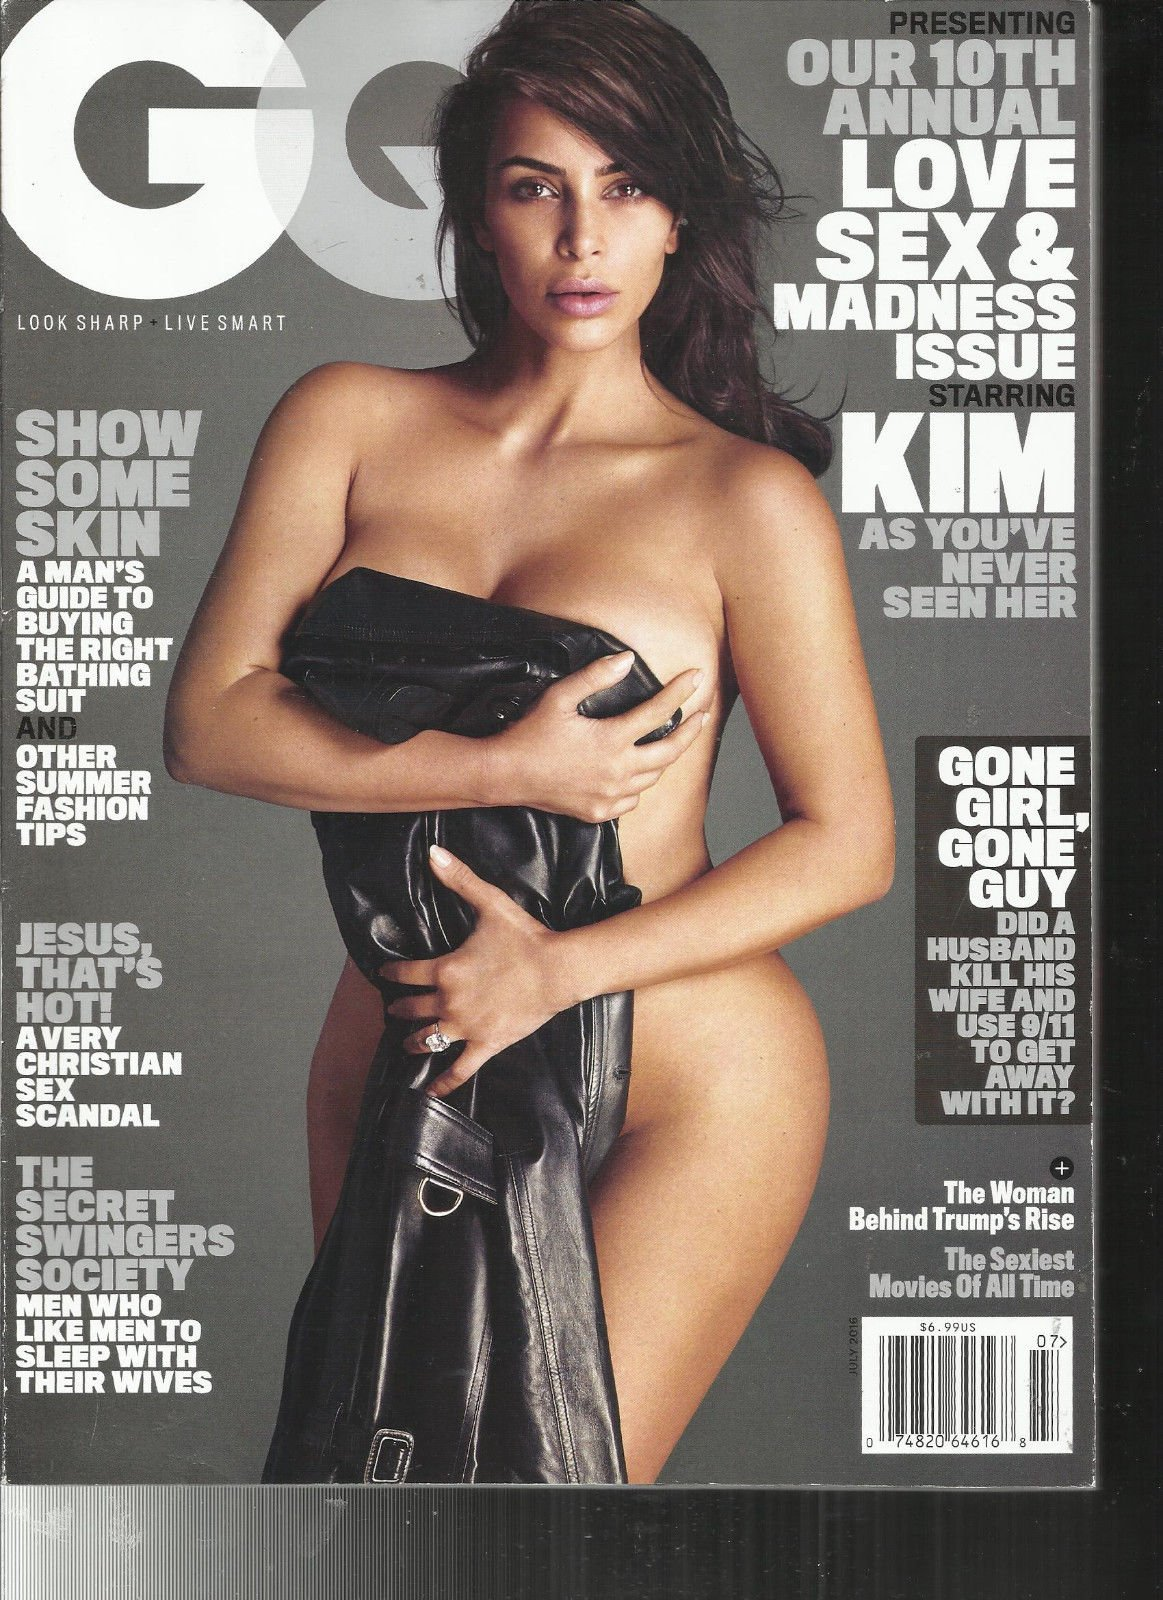 GQ MAGAZINE JULY, 2016 OUR 10th ANNUAL LOVE SEX & MADNESS ISSUE